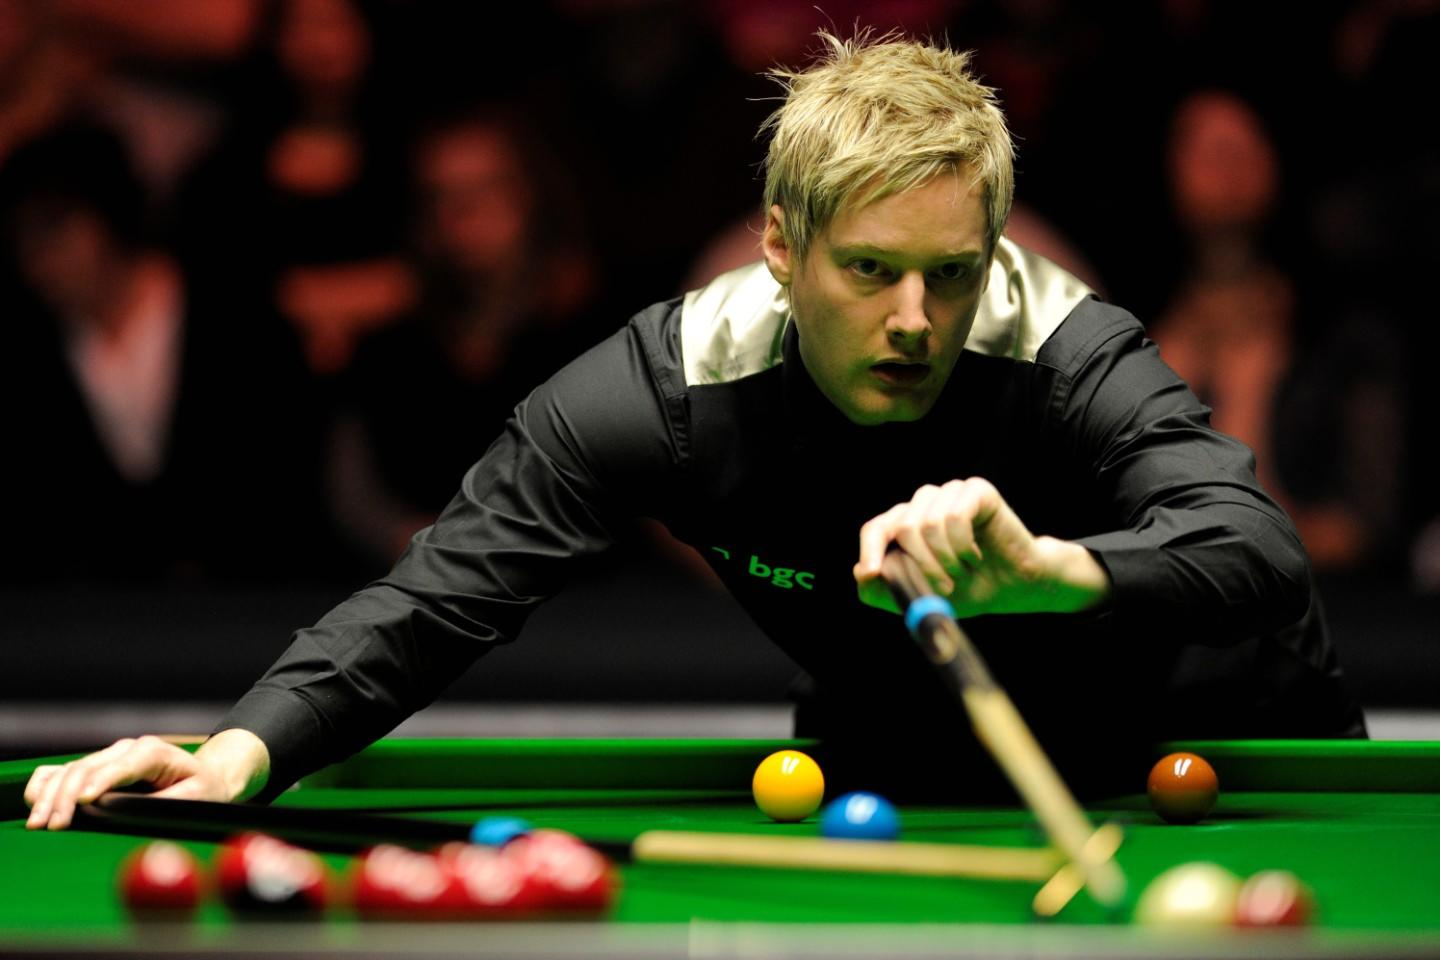 snooker - photo #22